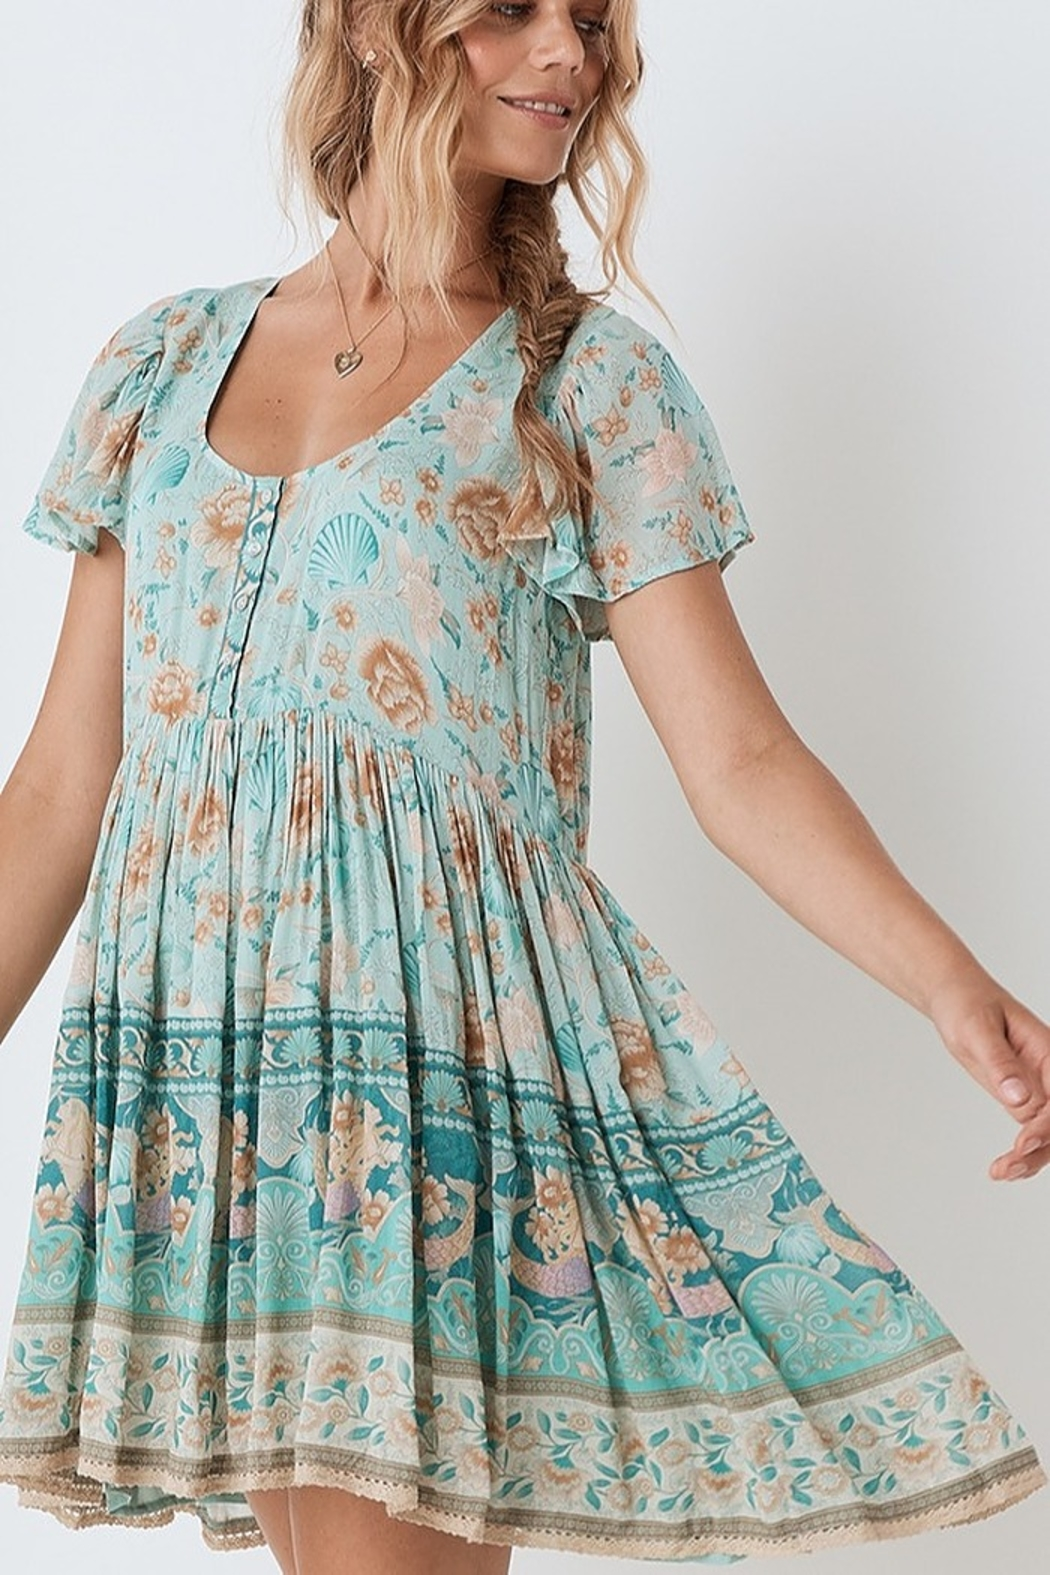 Spell & the Gypsy Collective Seashell Mini Dress - Seafoam - Front Full Image